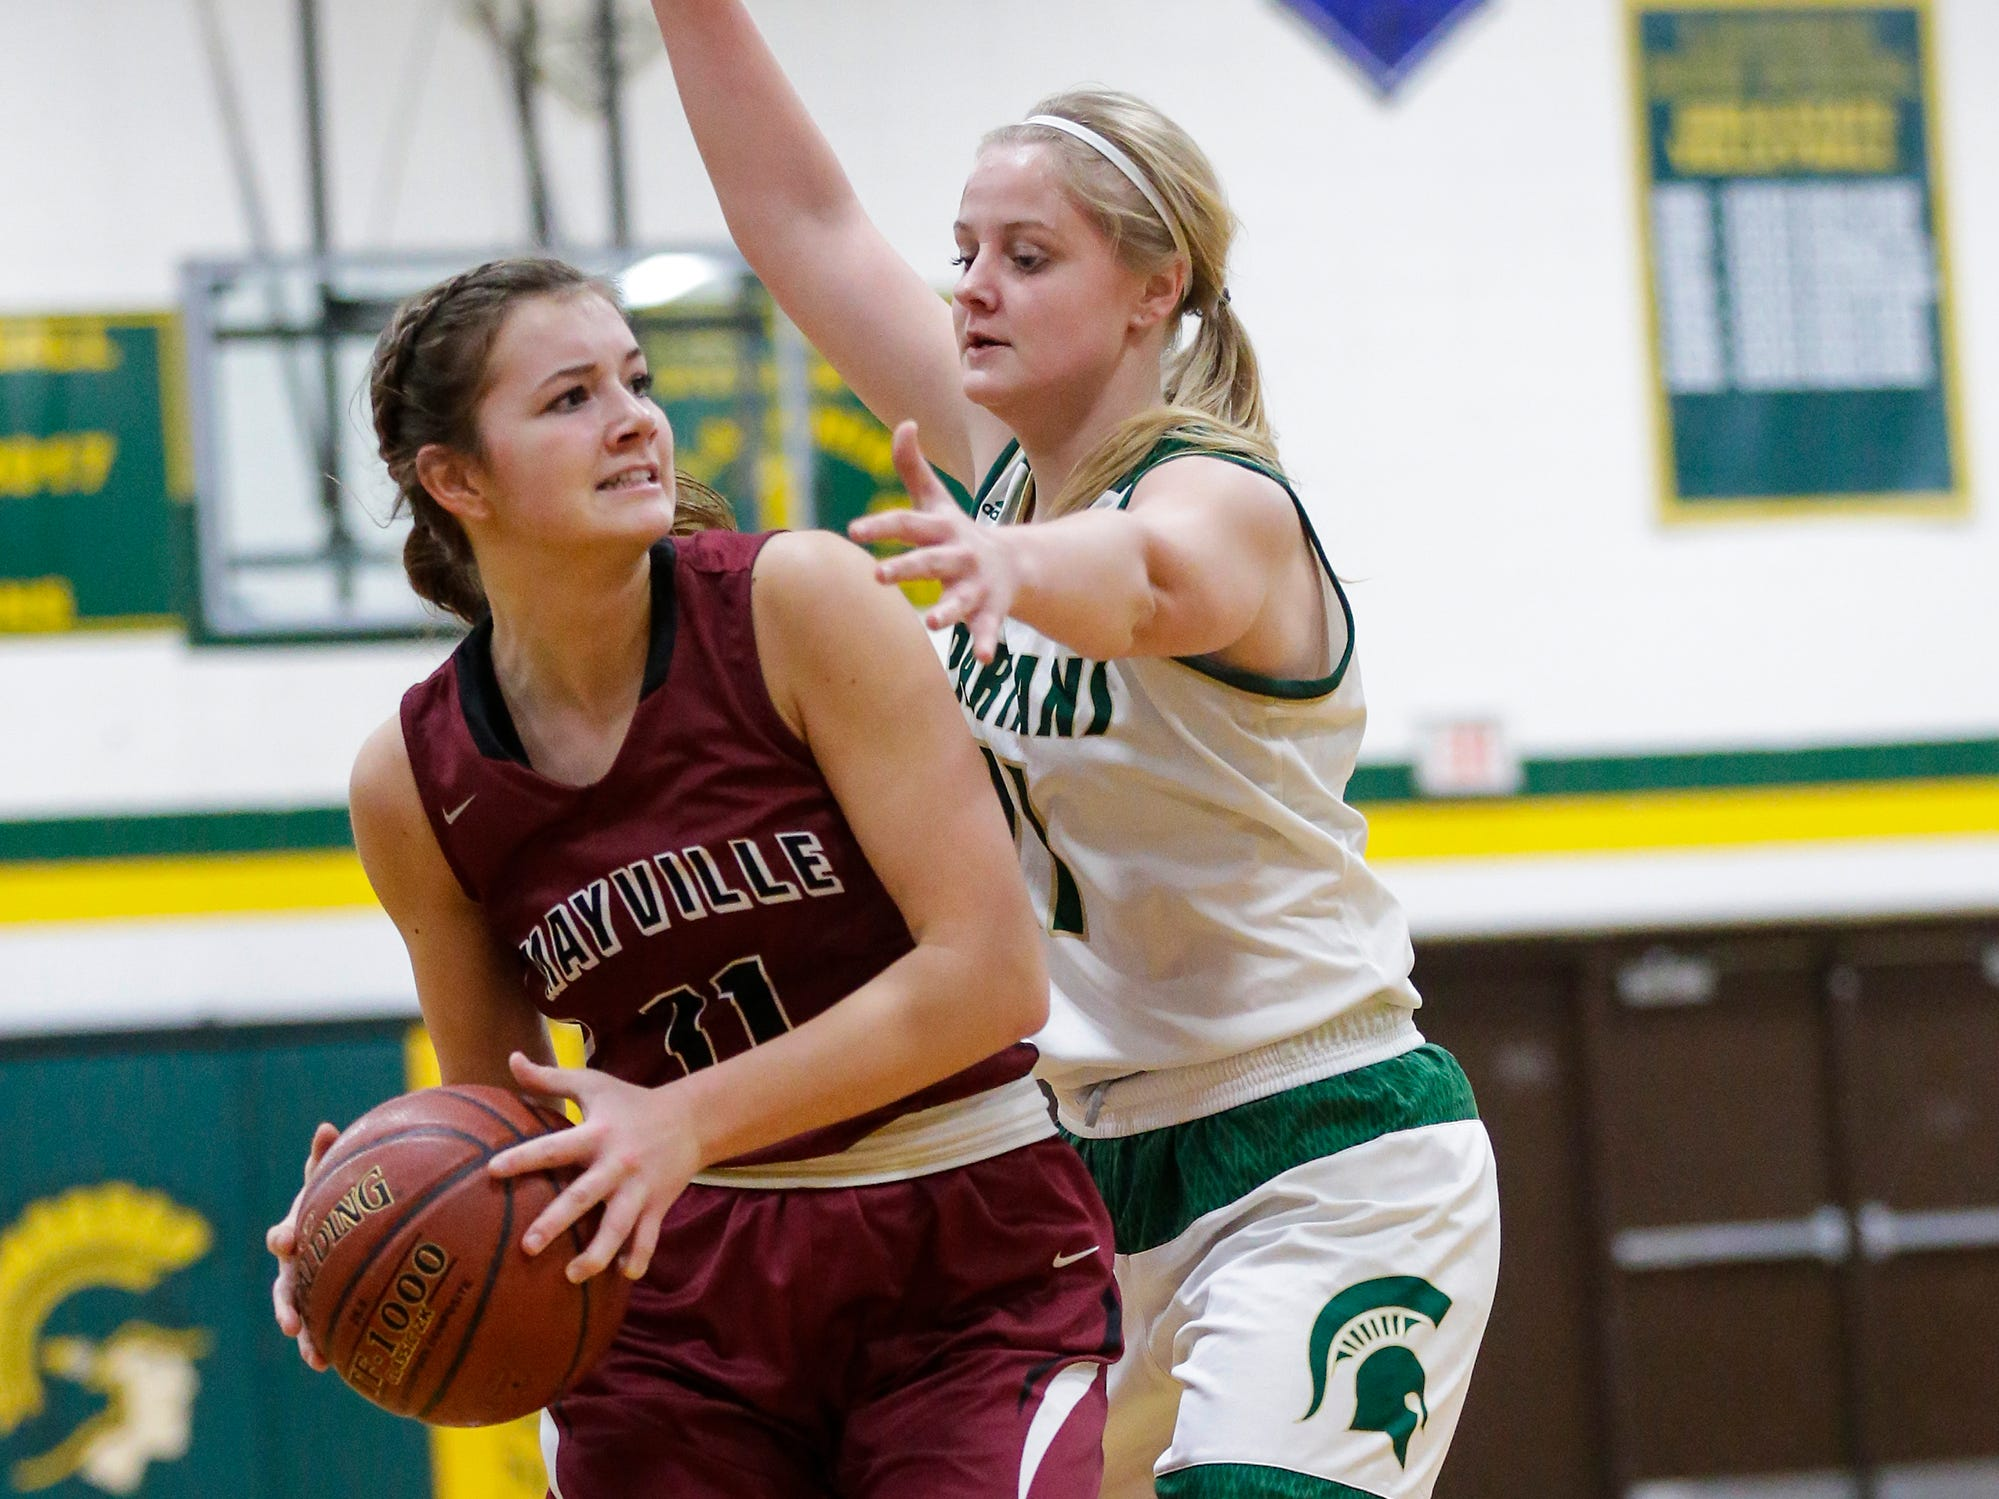 Mayville High School girls basketball's Whitney Liegl tries to pass the ball away from Laconia High School's Faith Weed during their game Friday, November 30, 2018 in Rosendale. Doug Raflik/USA TODAY NETWORK-Wisconsin